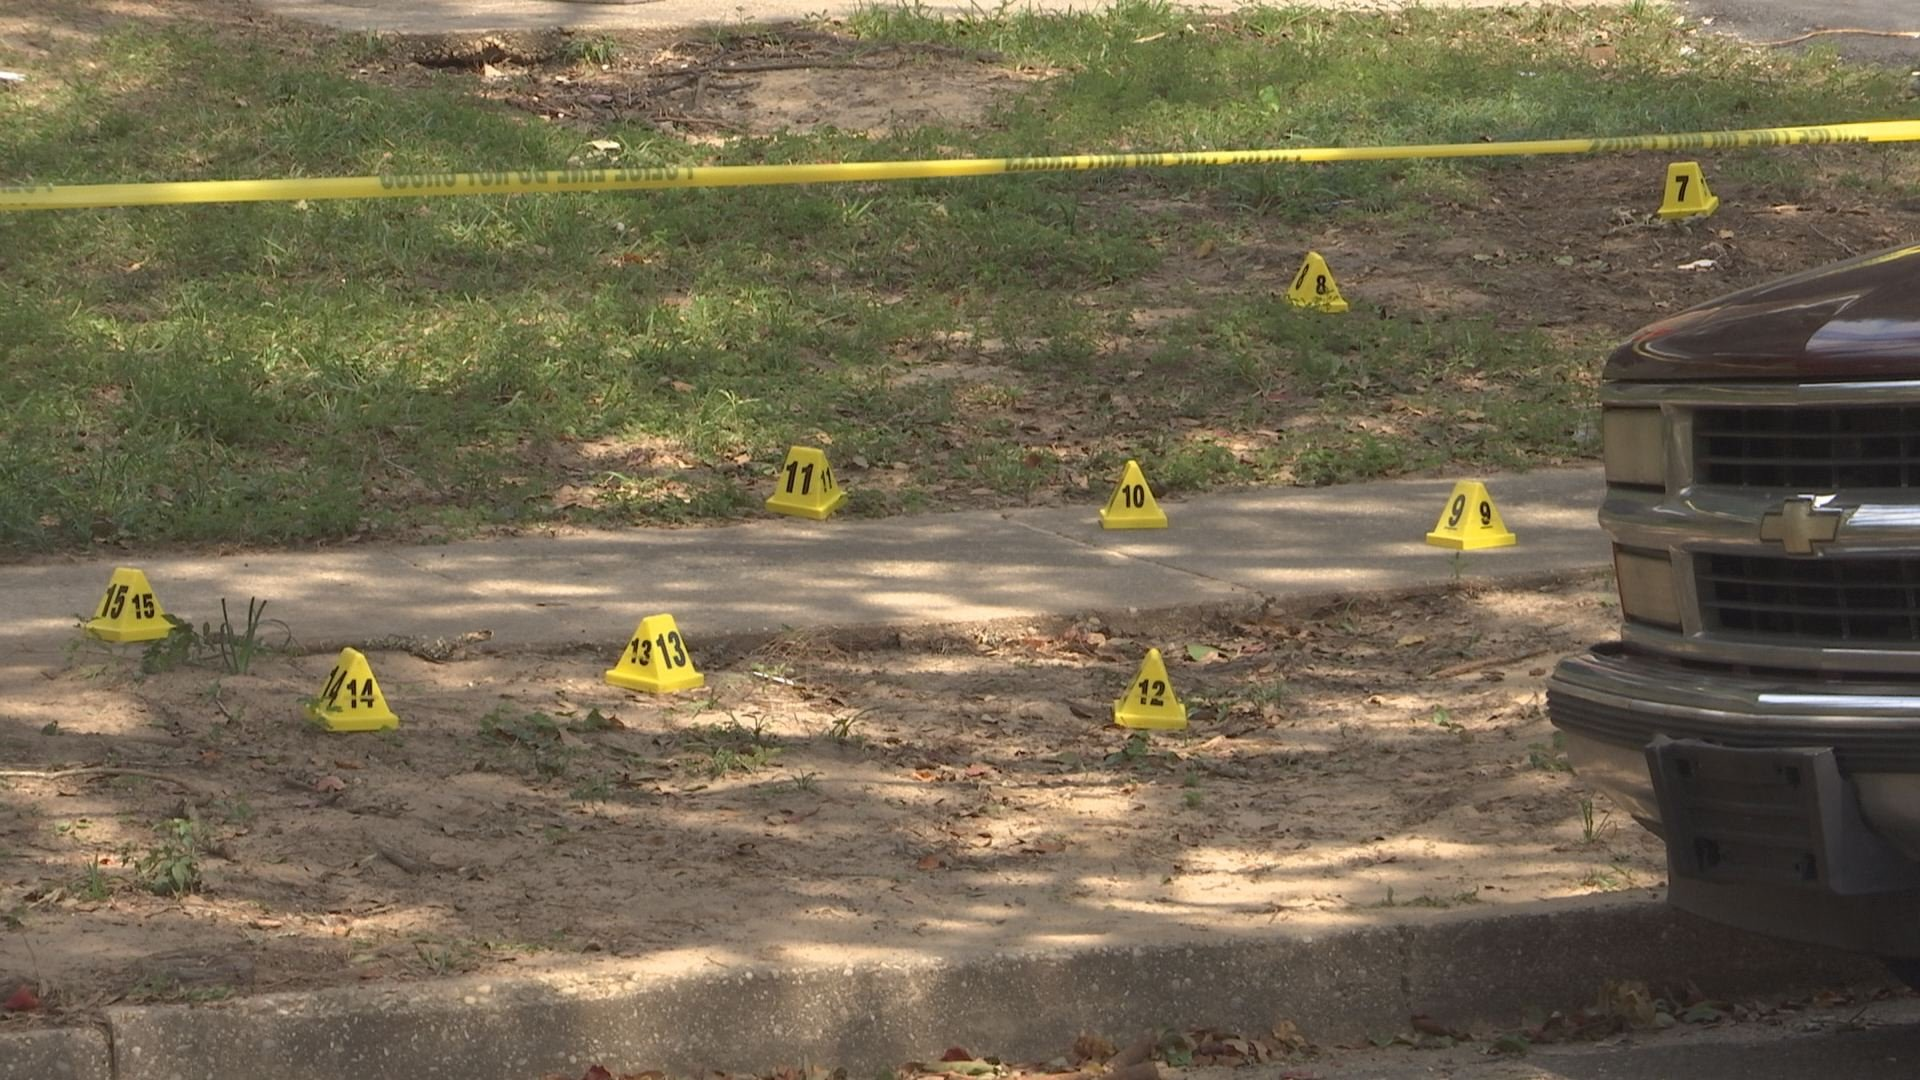 Shell casings were scattered around the front yard of a home on Wicker Way in Mobile after a drive-by shooting. (Credit: Daeshen Smith, WALA FOX10 News)